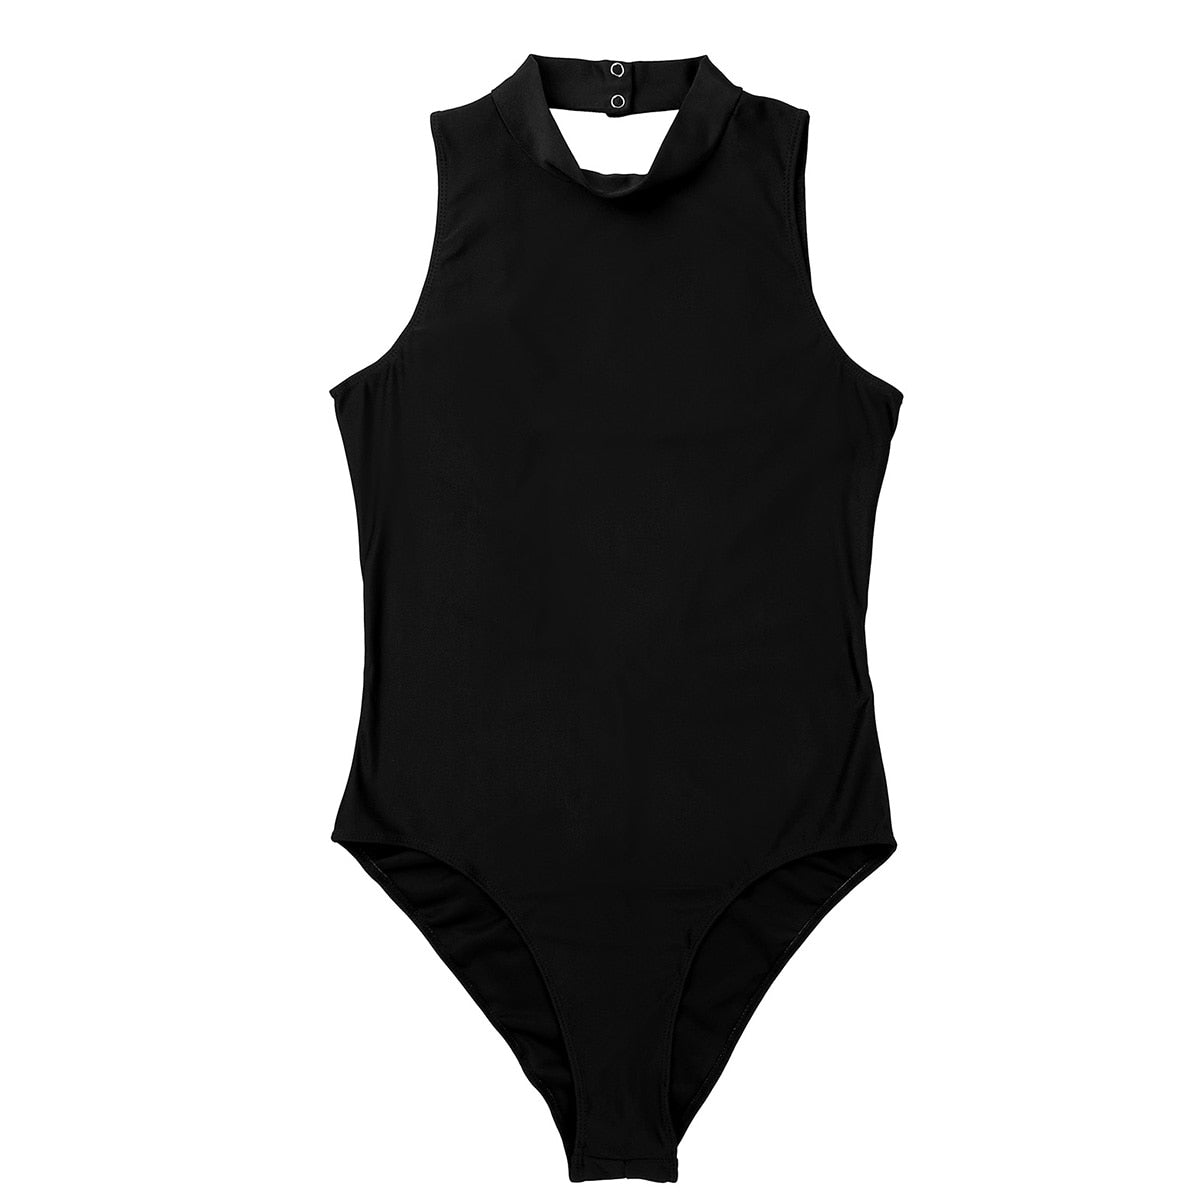 Women's Full Body Sheer Swimsuit Halter Neck Swimwear High Cut Leotard Bodysuit Gymnastics Leotard Swimming Suit Bath Clothes - Smoulder Products